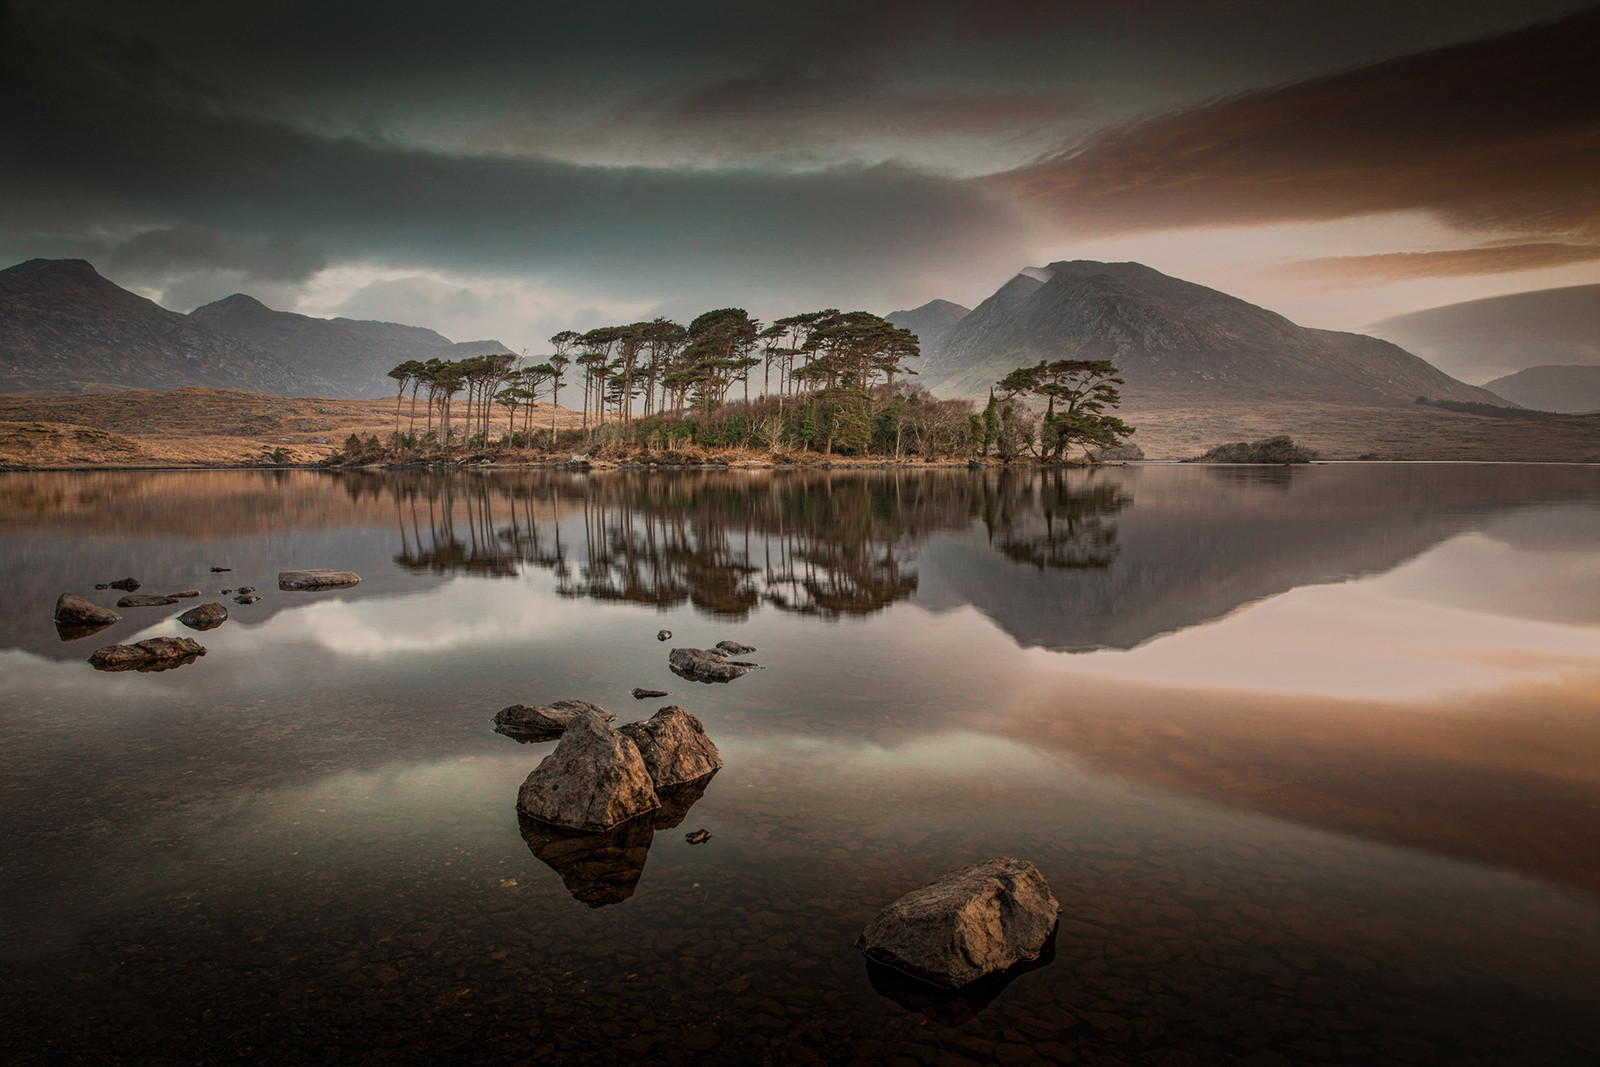 COLOUR - Reflections on Pine Island by Roy Crawford (12 marks)